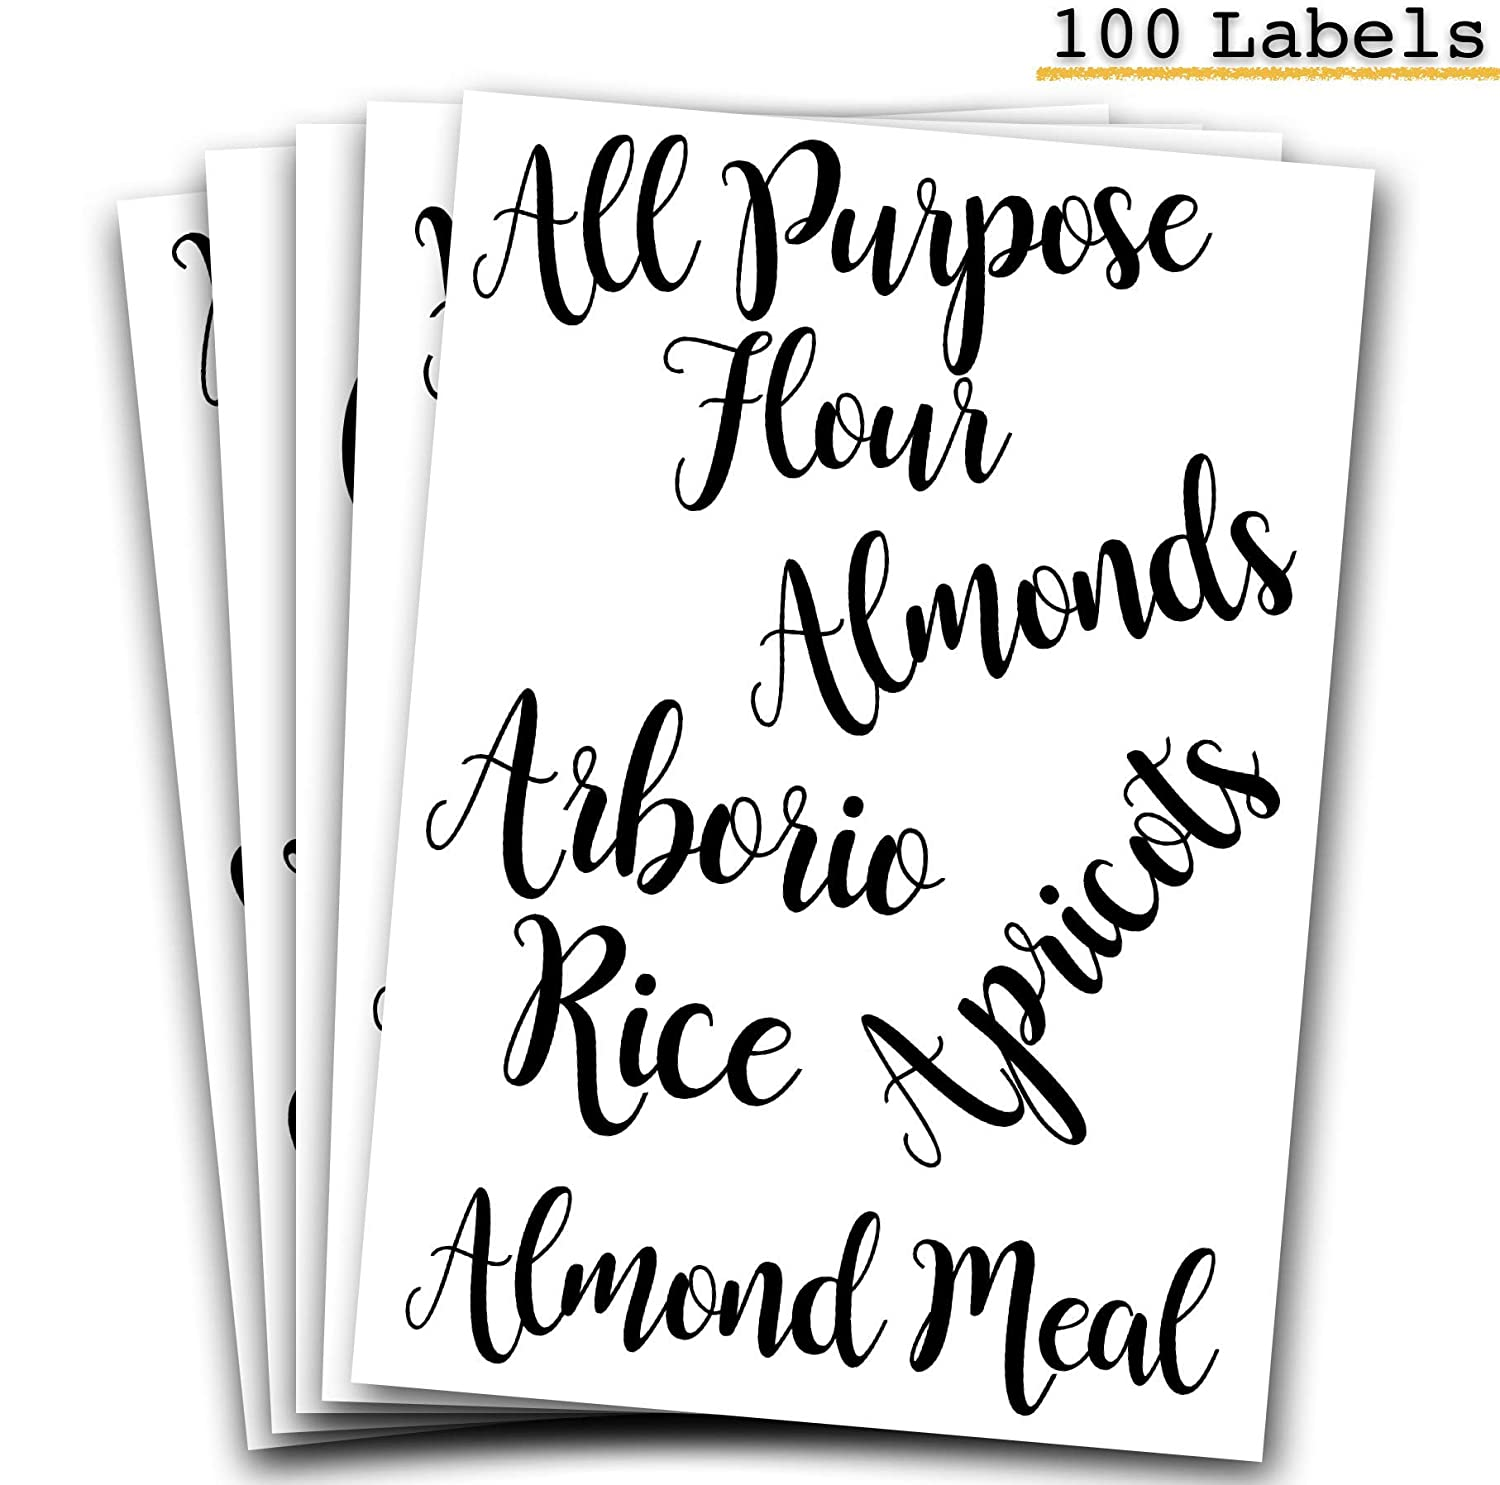 Decorative Pantry, Kitchen Labels for Food and Ingredients - Adorable Organizer Stickers, Clear, Cursive Style - Mason Jar, Canister, Container Itemized Labels for Flour, Sugar, Grains, Pasta and more